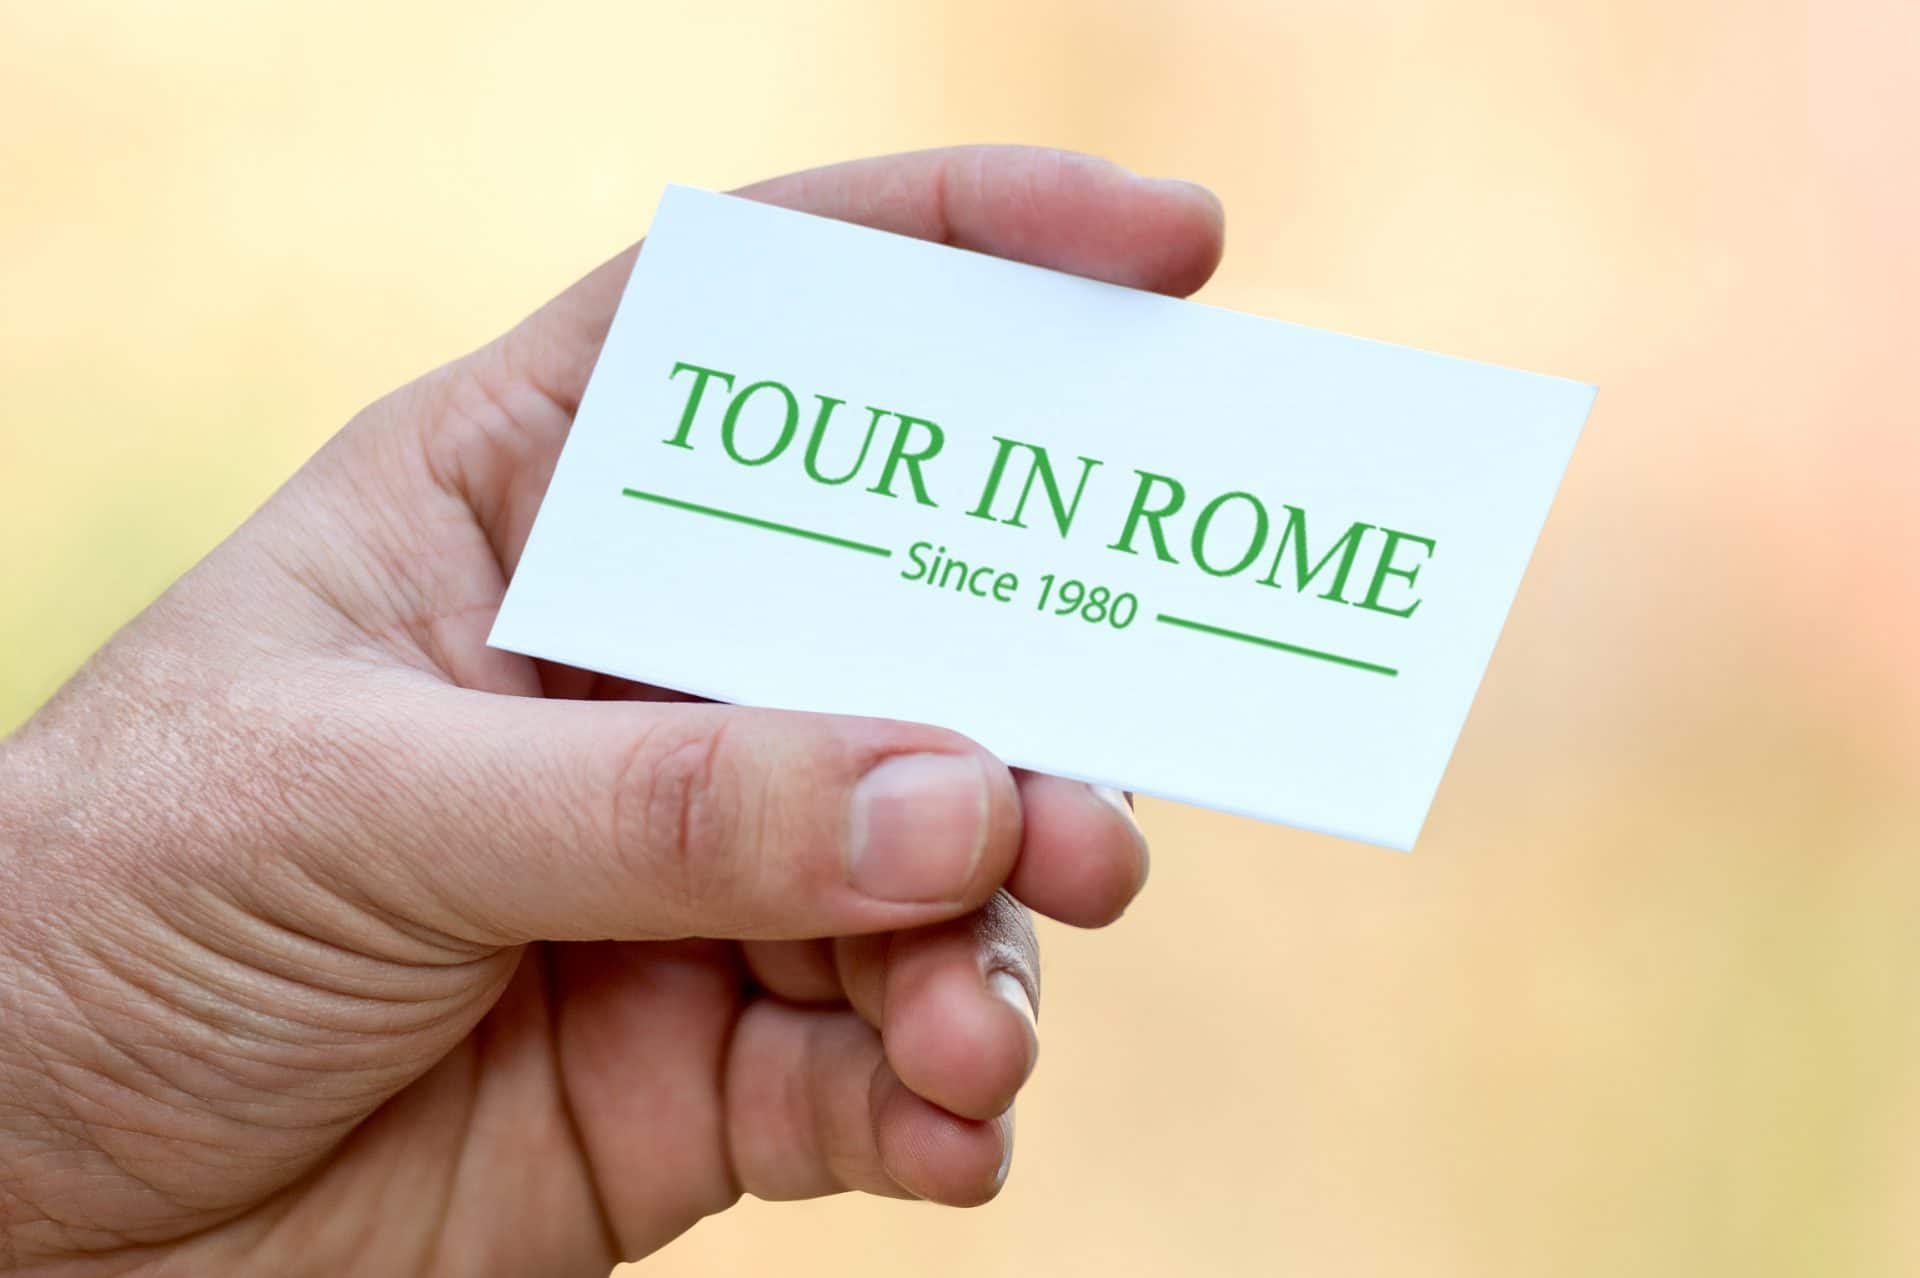 - Logo tour in rome - Logo Tour in Rome